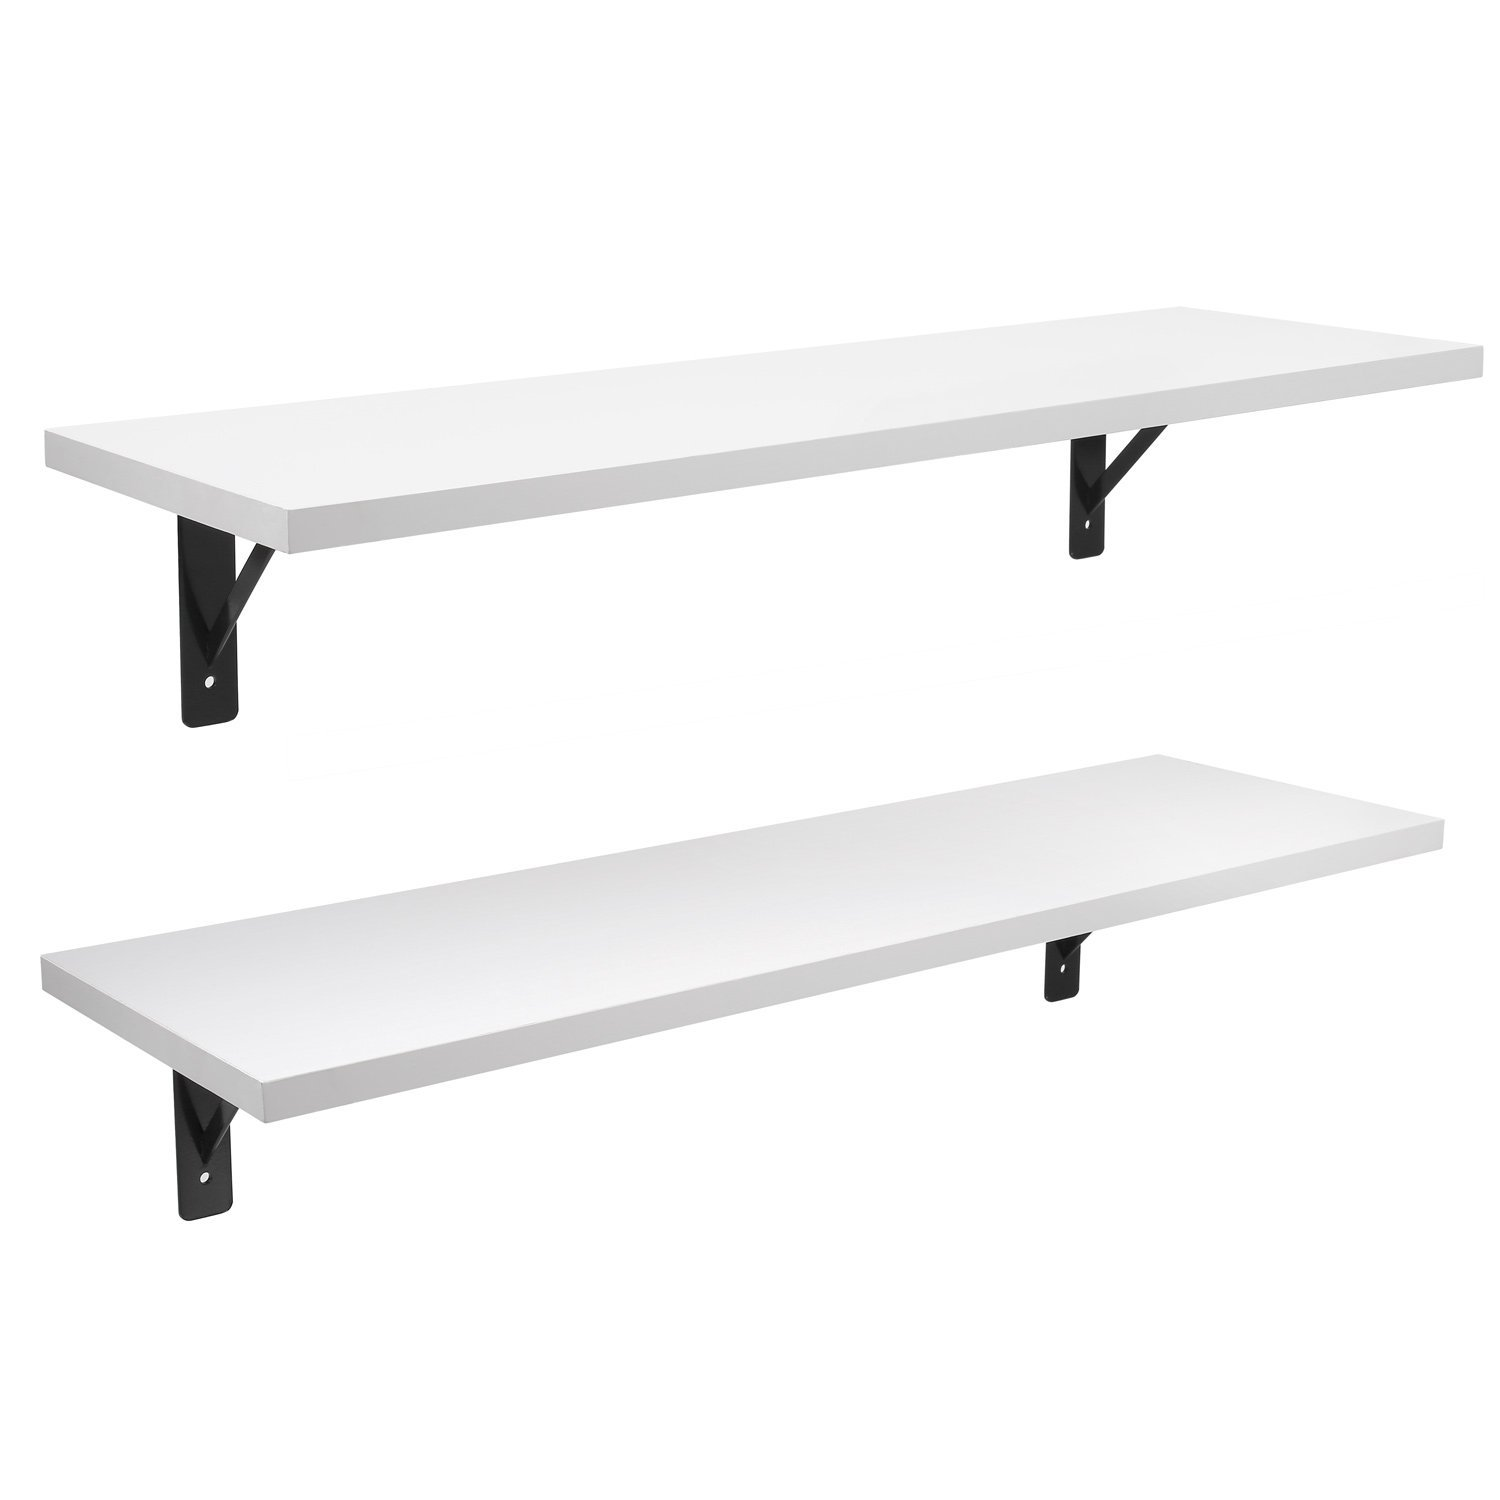 floating shelves wall mounted display ledge shelf with bracket for brackets ture ikea lack weight limit narrow shelving systems television tables walk closet storage sneakers